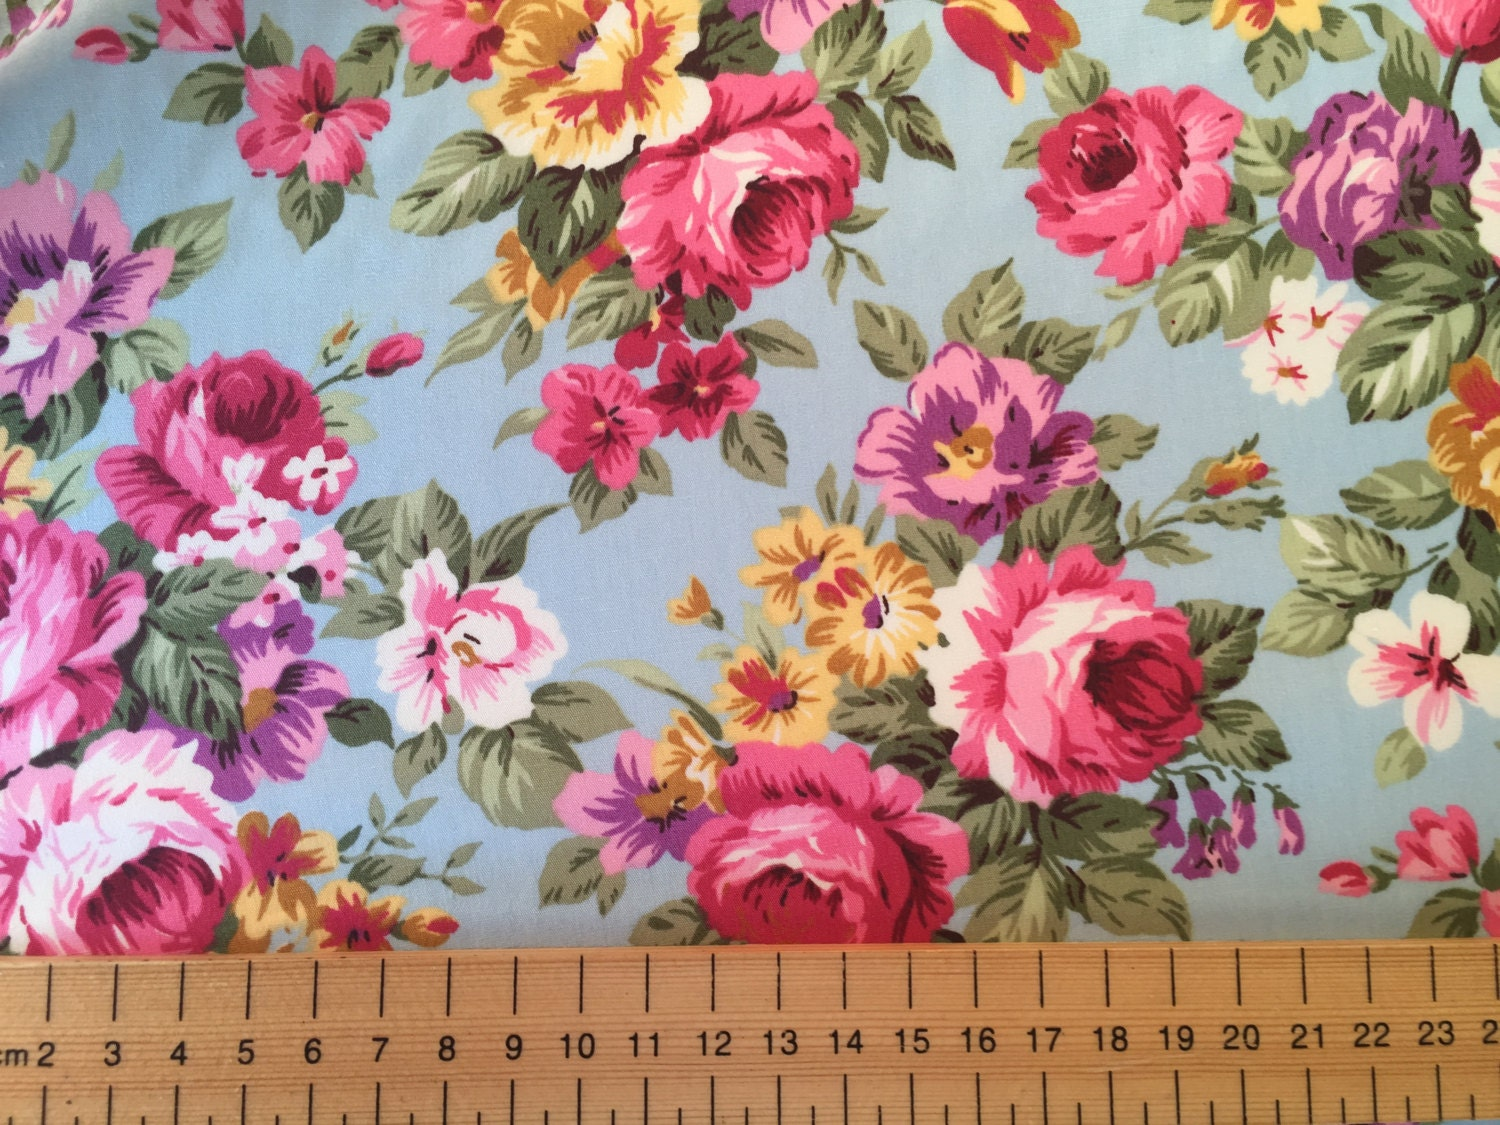 Mulberry Home Vintage Floral FD264.W46 Fabric | Rose/Green ... |Vintage Floral Fabric